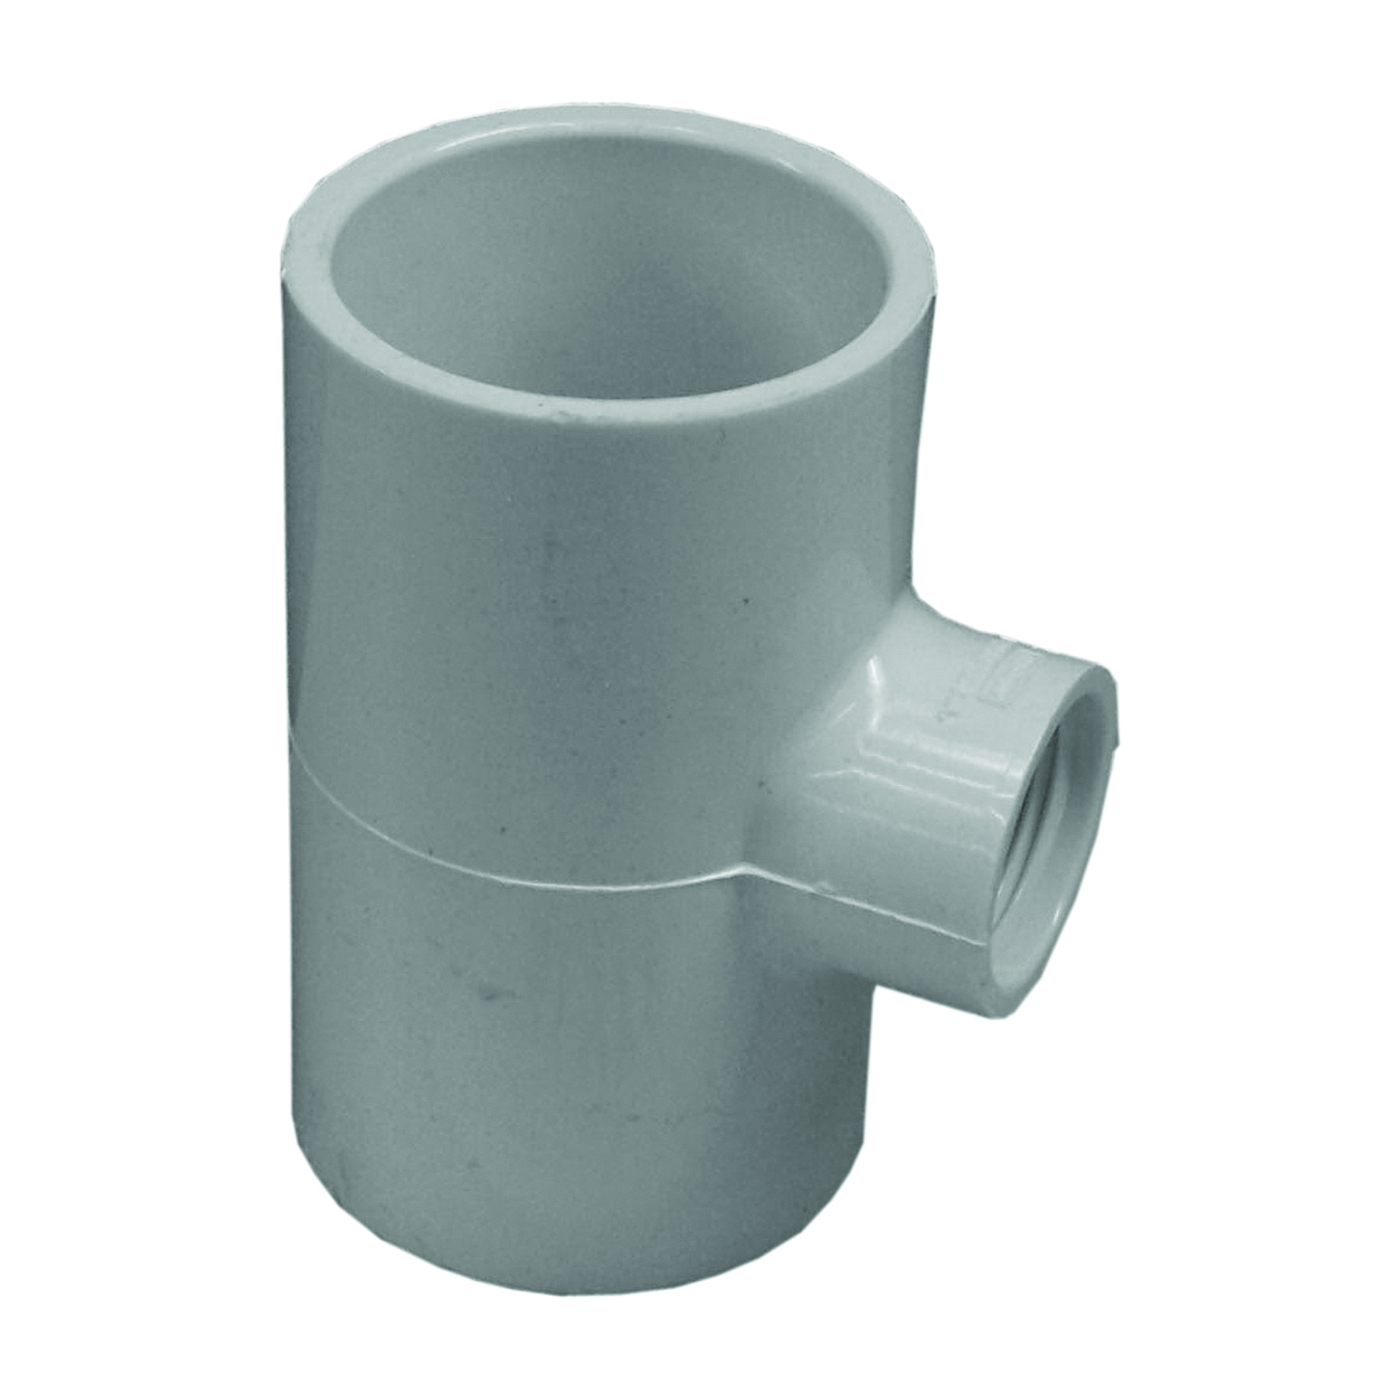 Picture of GENOVA 300 Series 31494 Pipe Reducing Tee, 1-1/2 in Run, Slip Run Connection, 3/4 in Branch, White